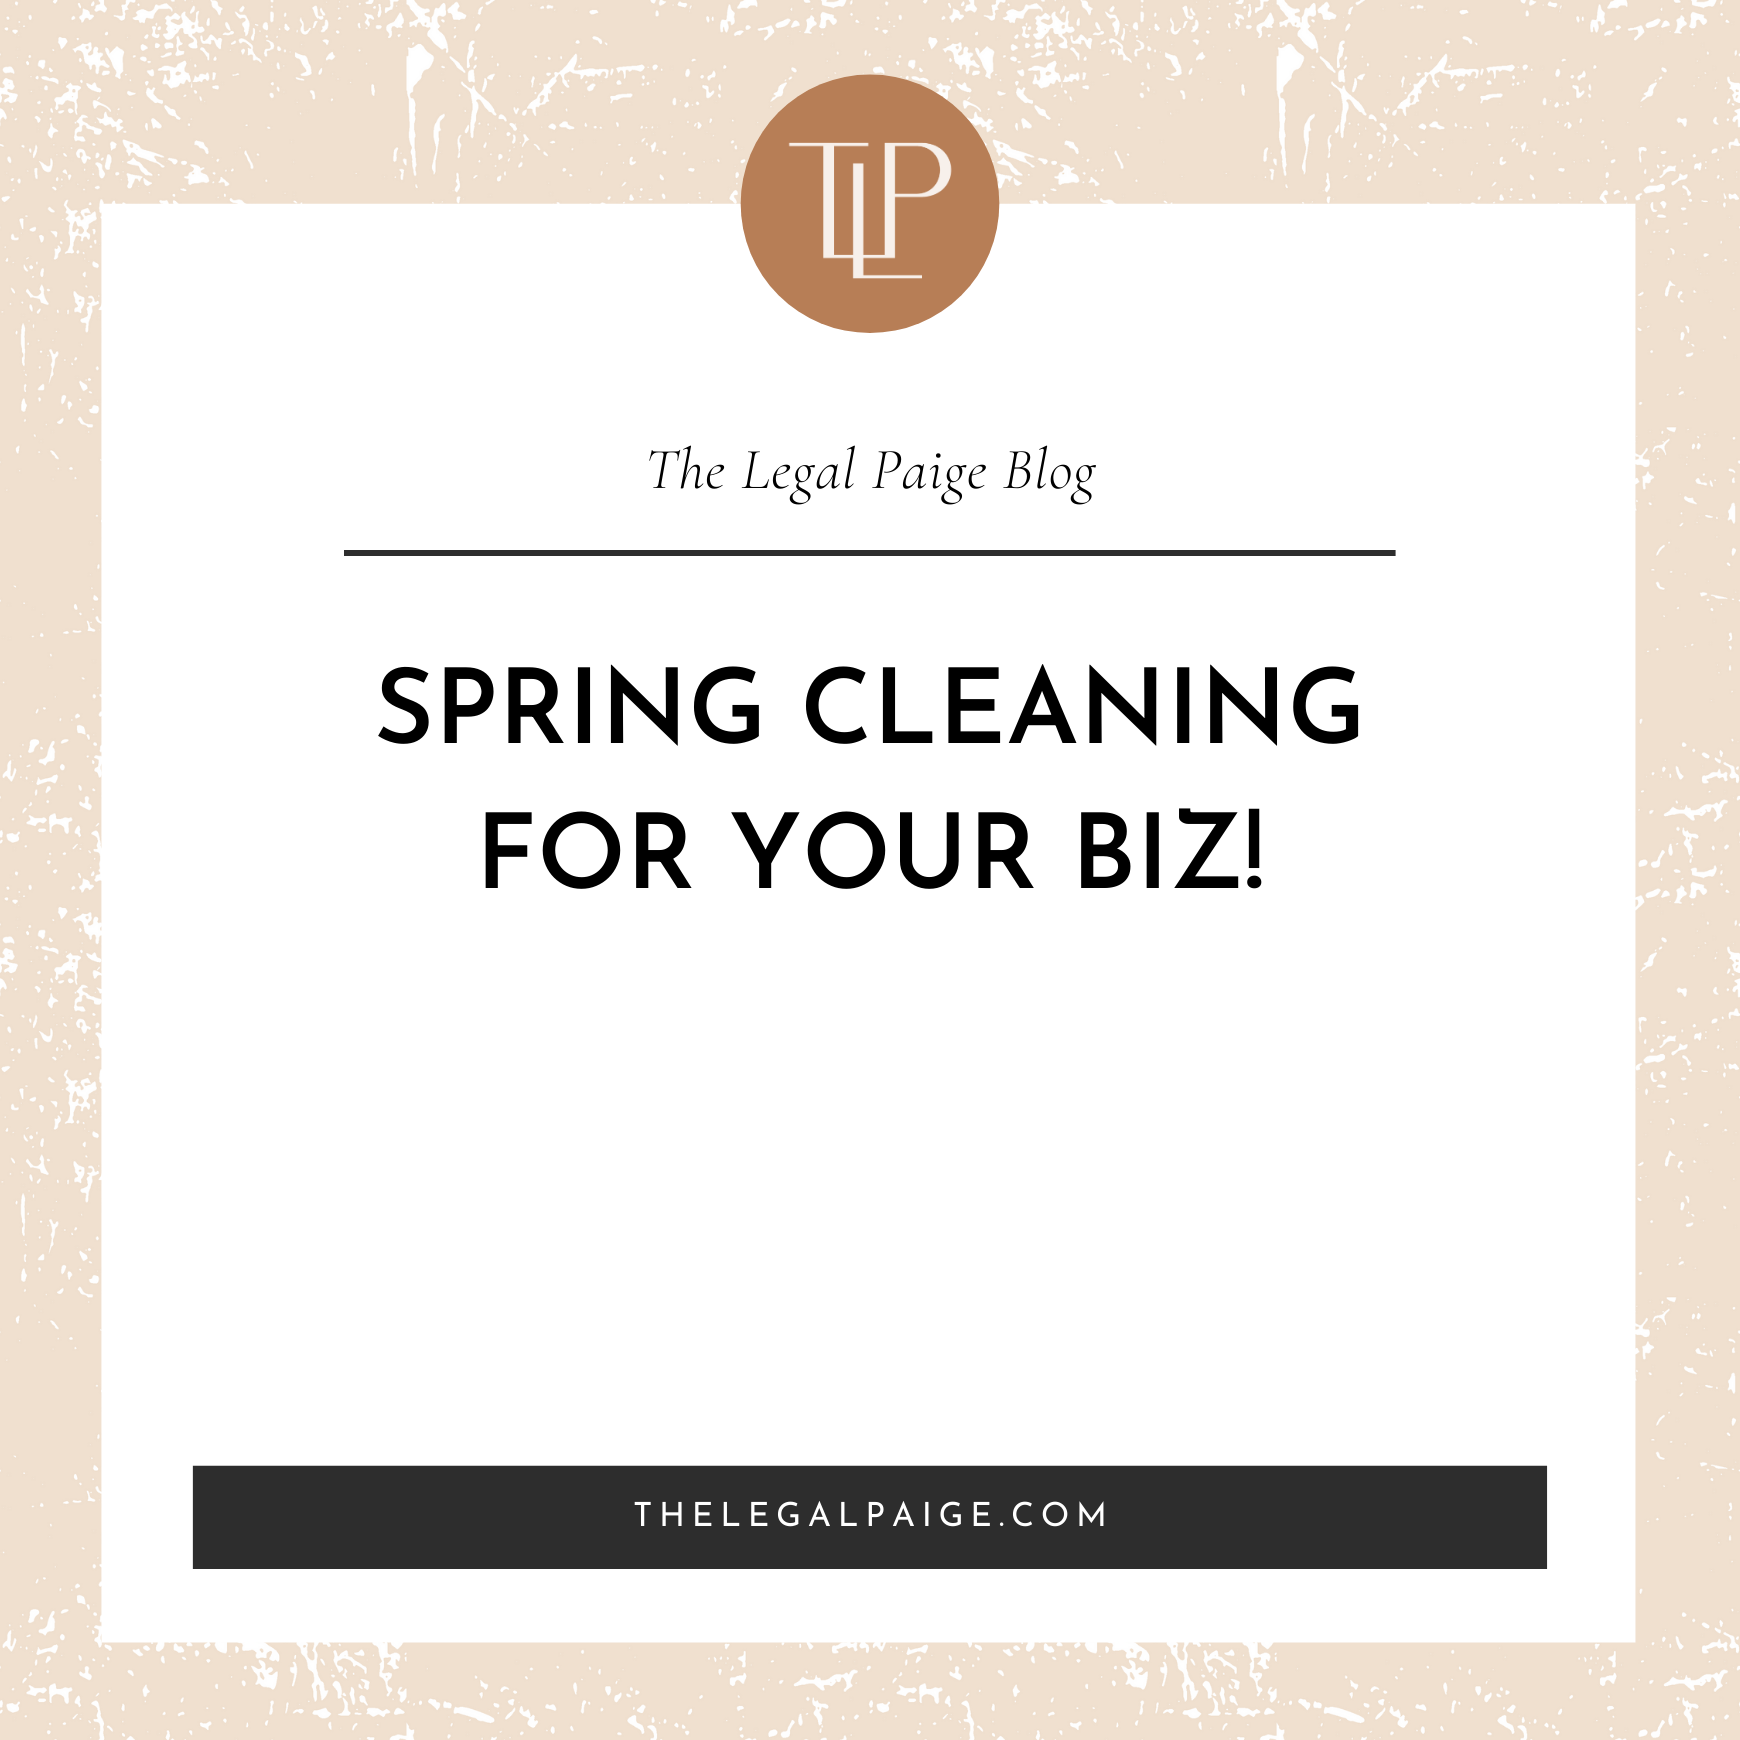 Spring Cleaning for Your Biz!